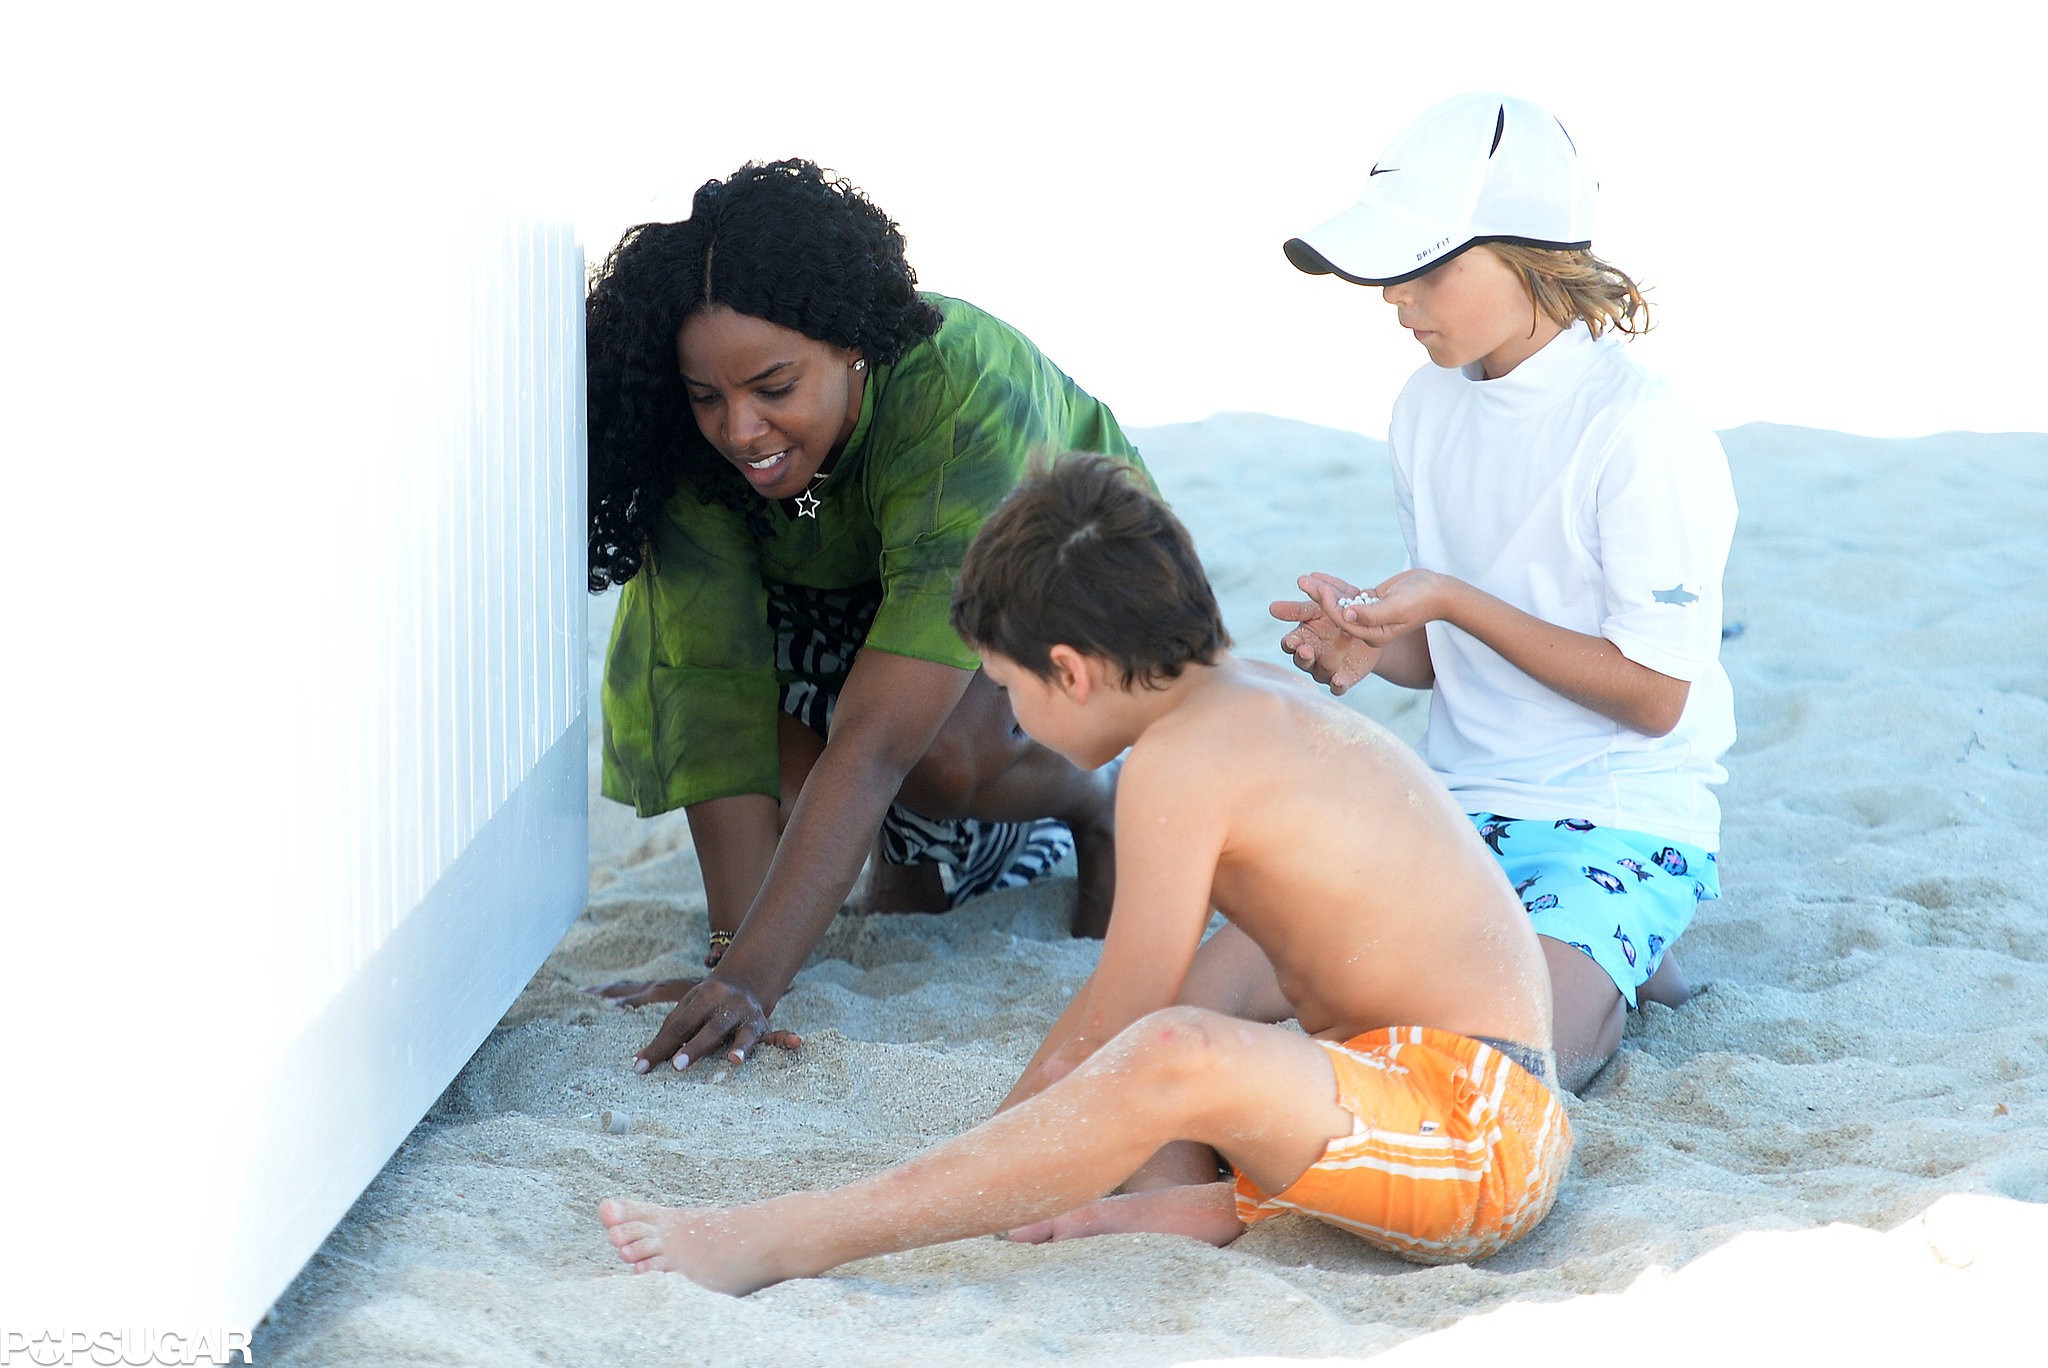 Kelly Rowland helped two kids build sand castles on the beach.